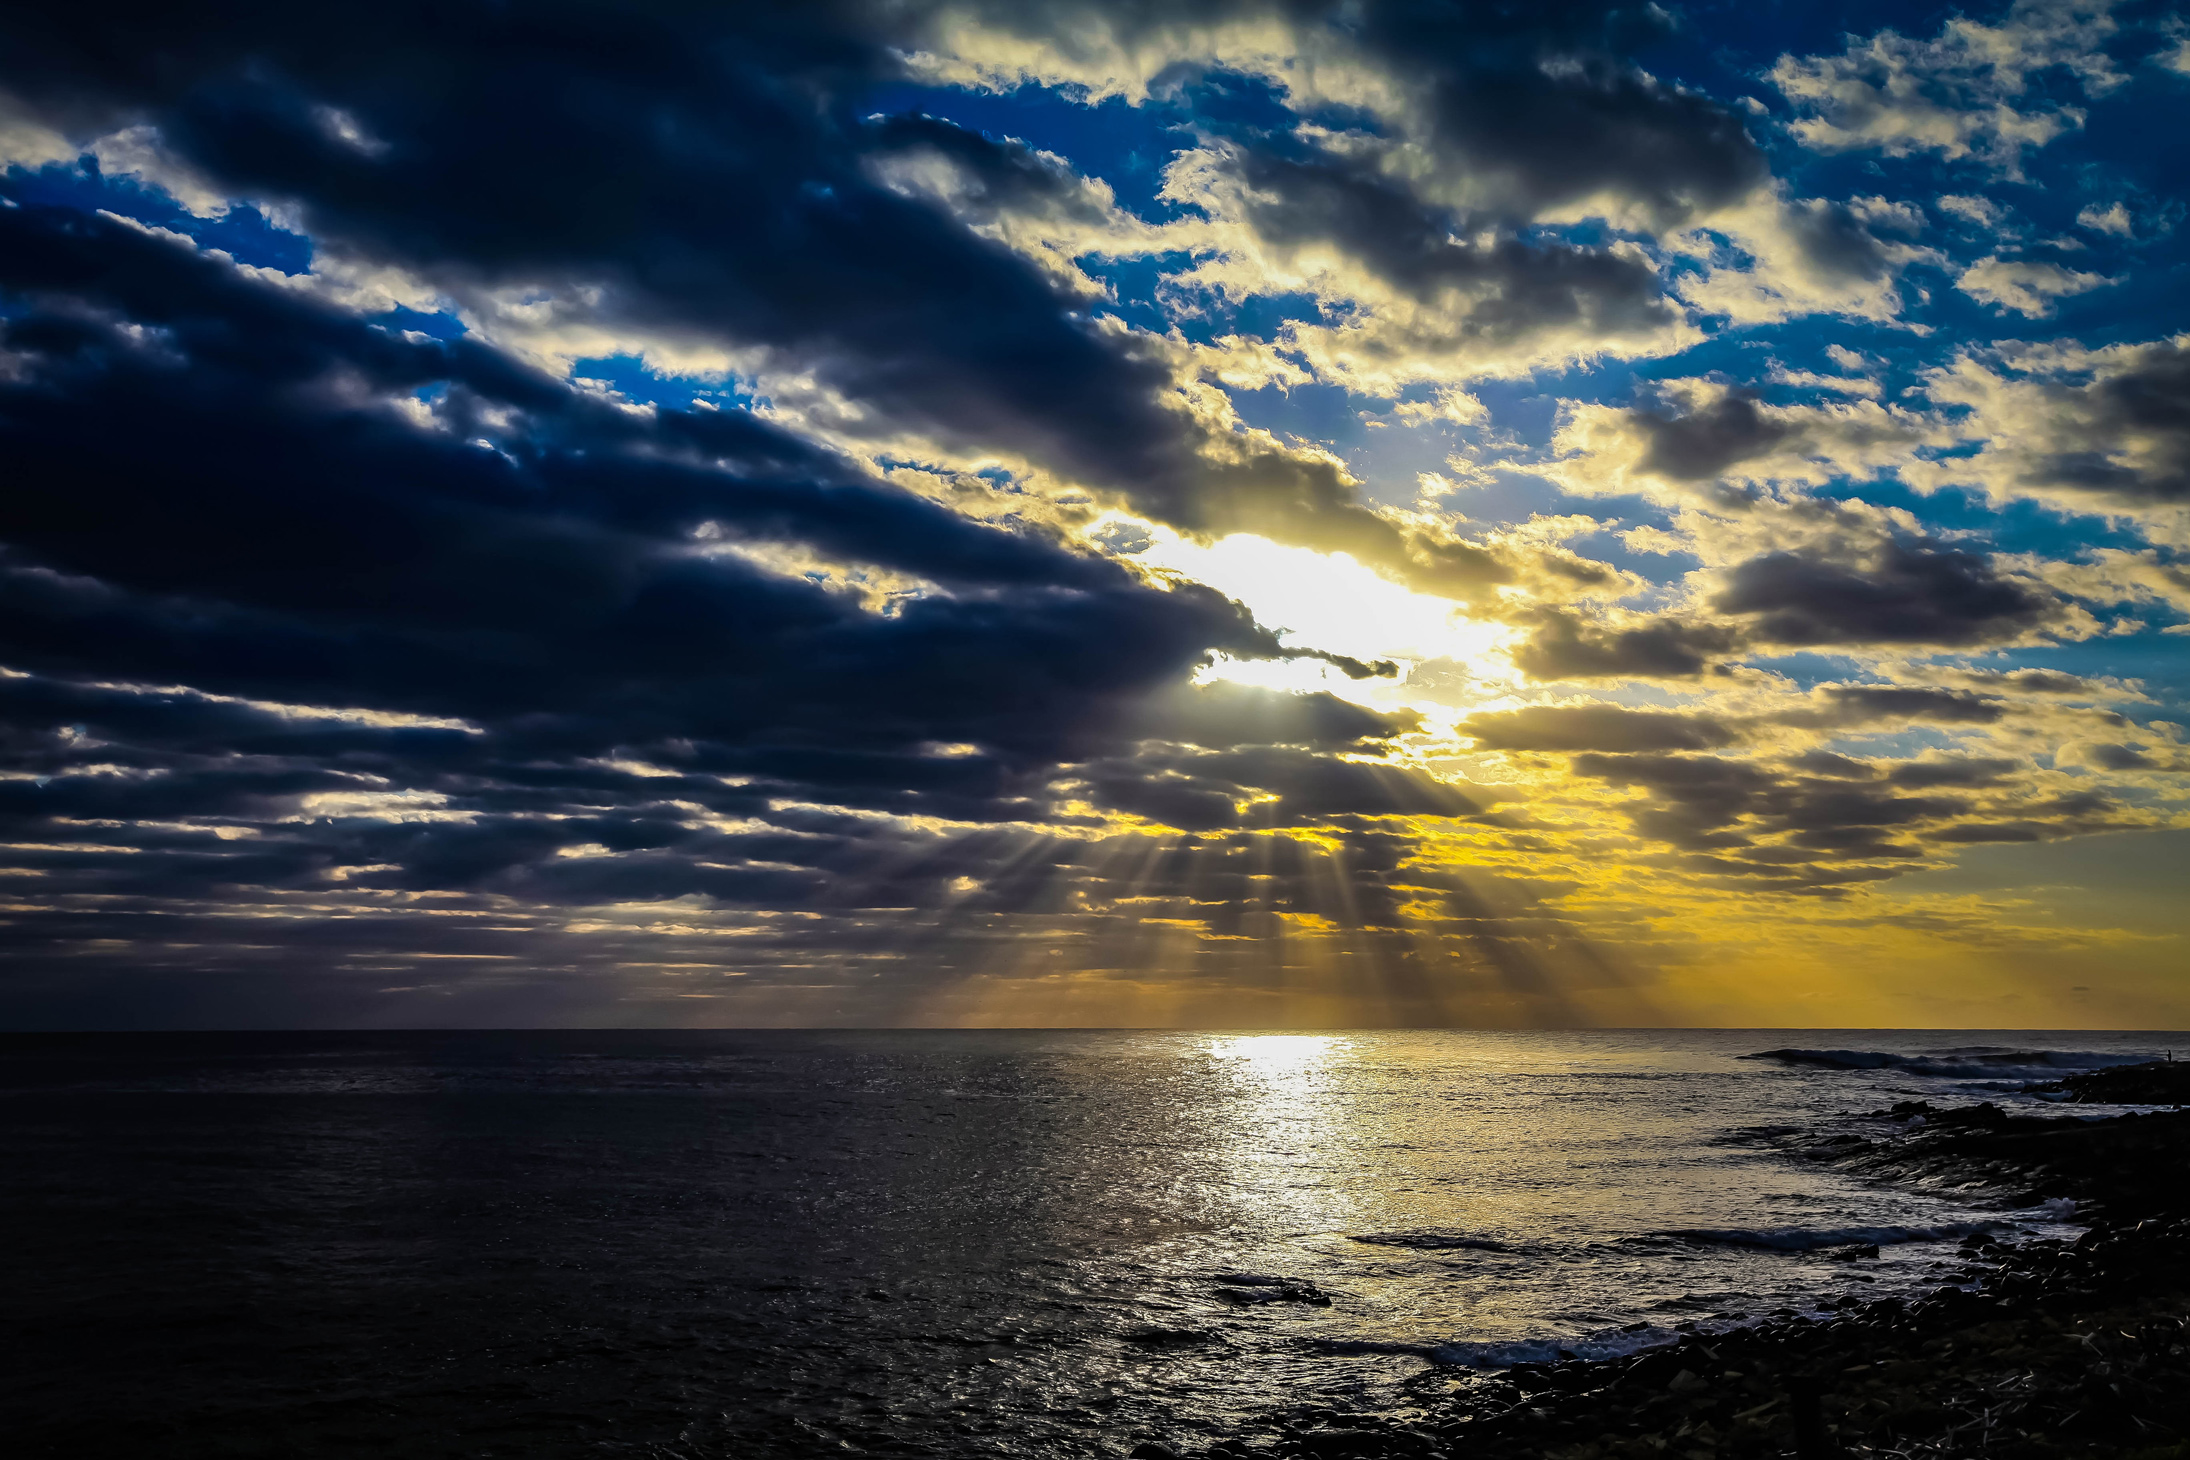 suns rays breaking through clouds onto the ocean - sunset